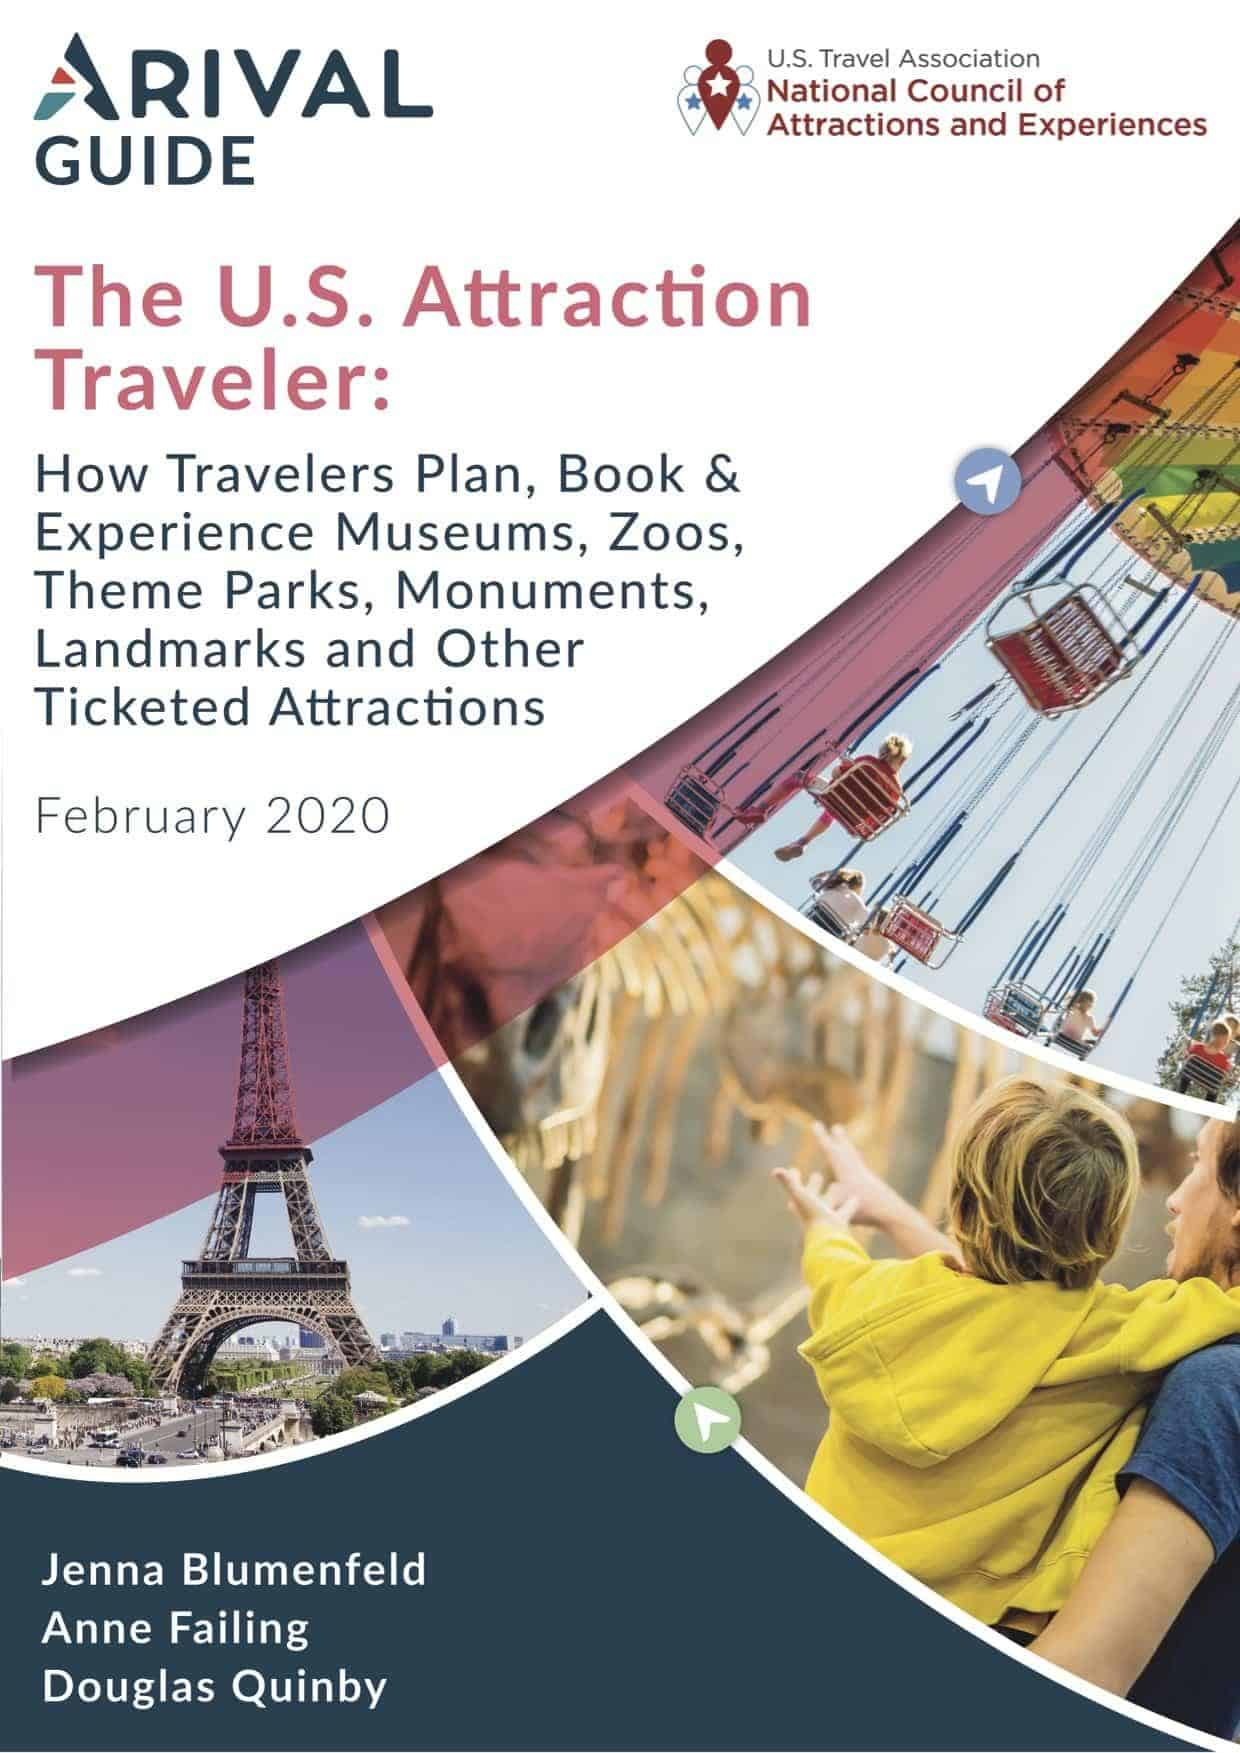 Arival Guide U.S. Attraction Traveler Cover Image